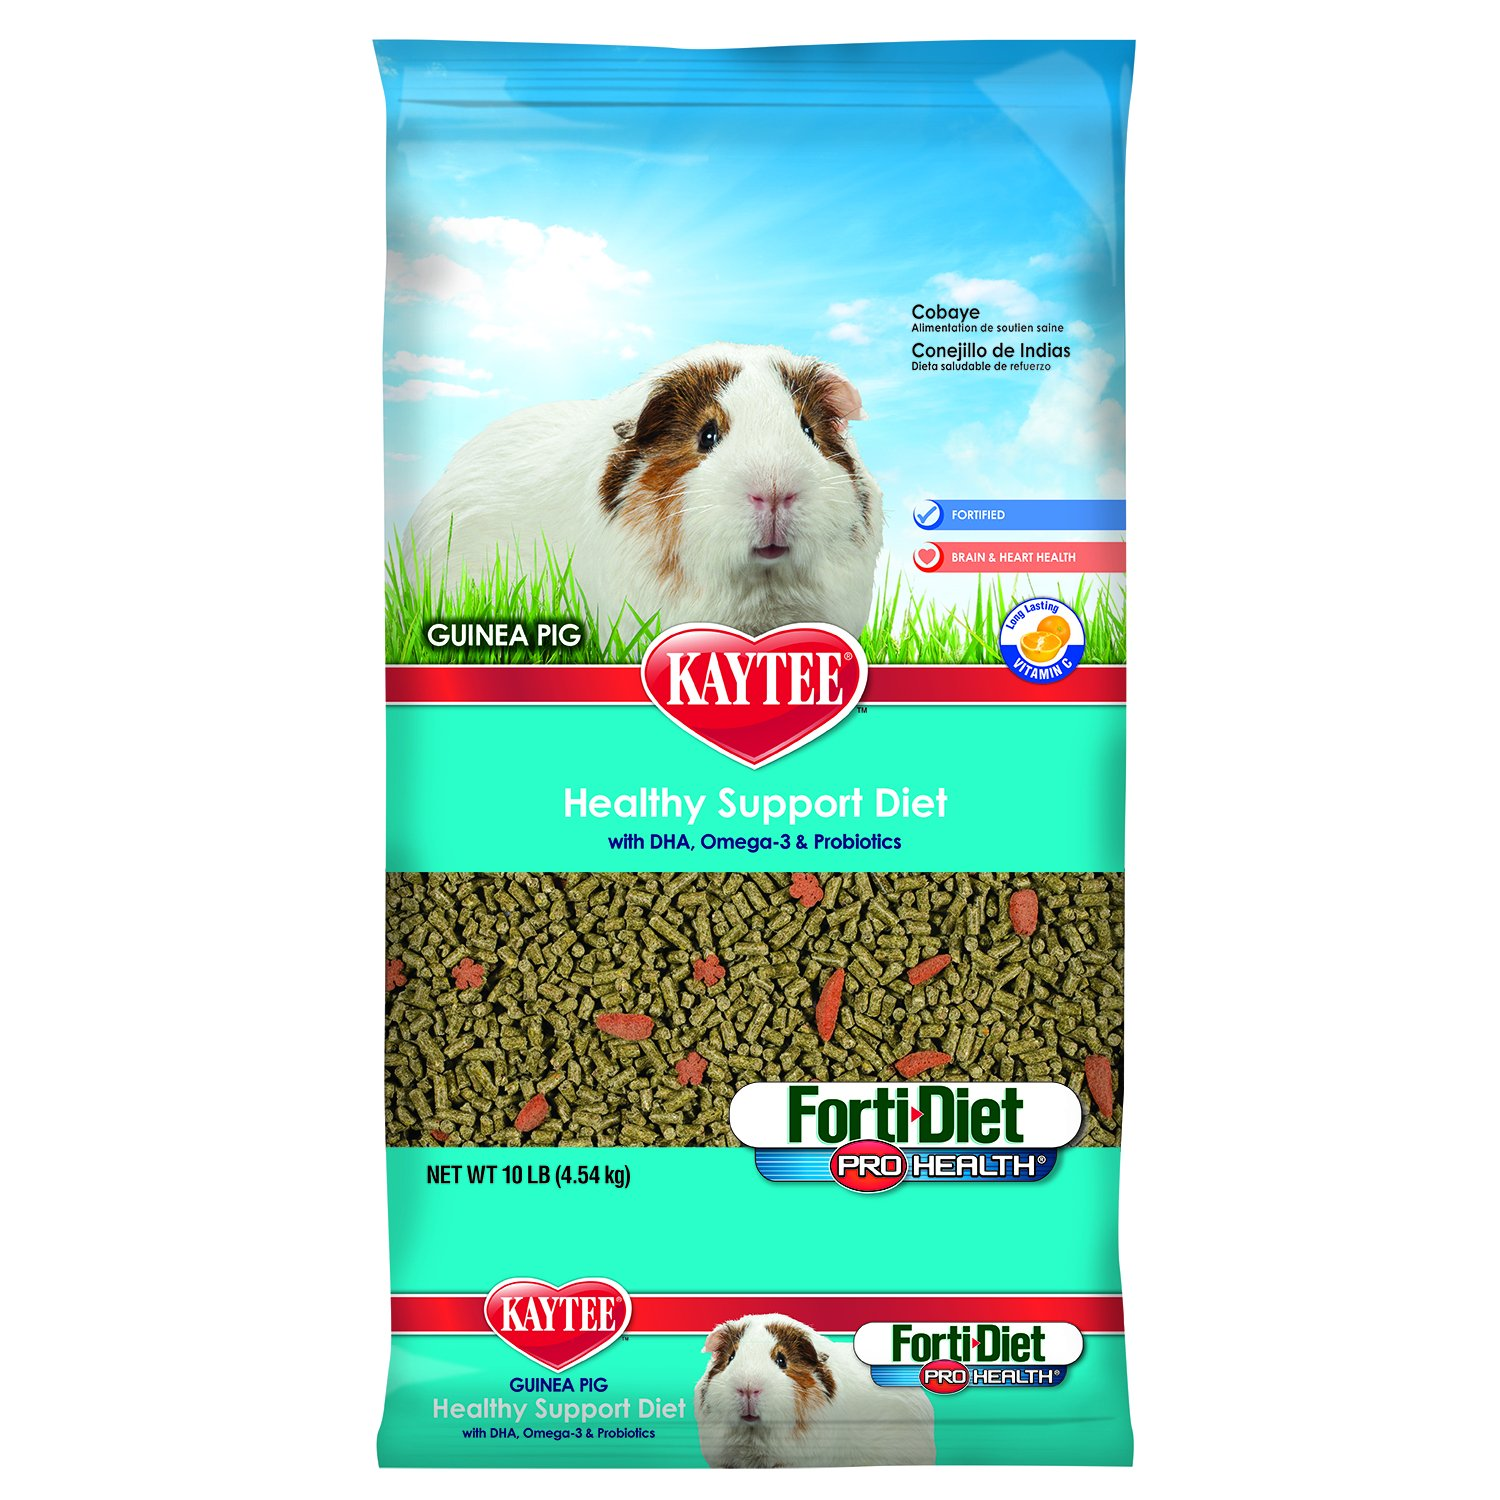 Kaytee Forti Diet Pro Health Guinea Pig Food,  10-Pound